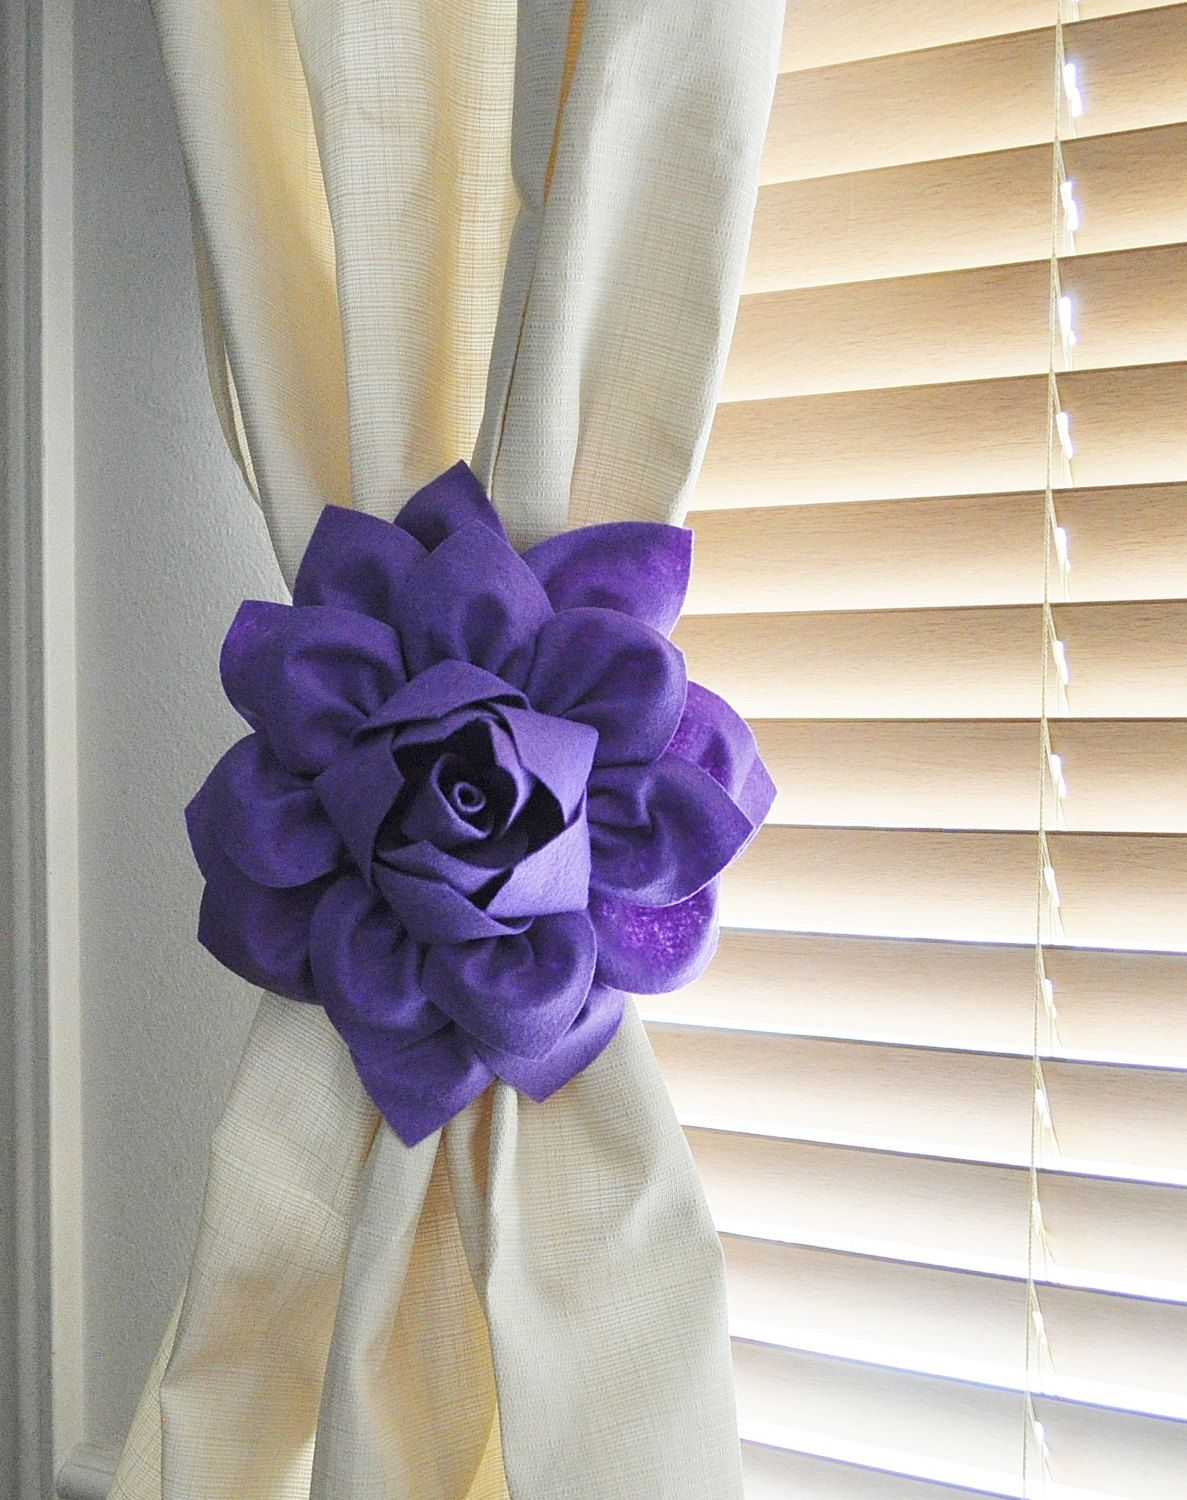 Def Want To Make This For My Girls Room Giant Felt Flower With